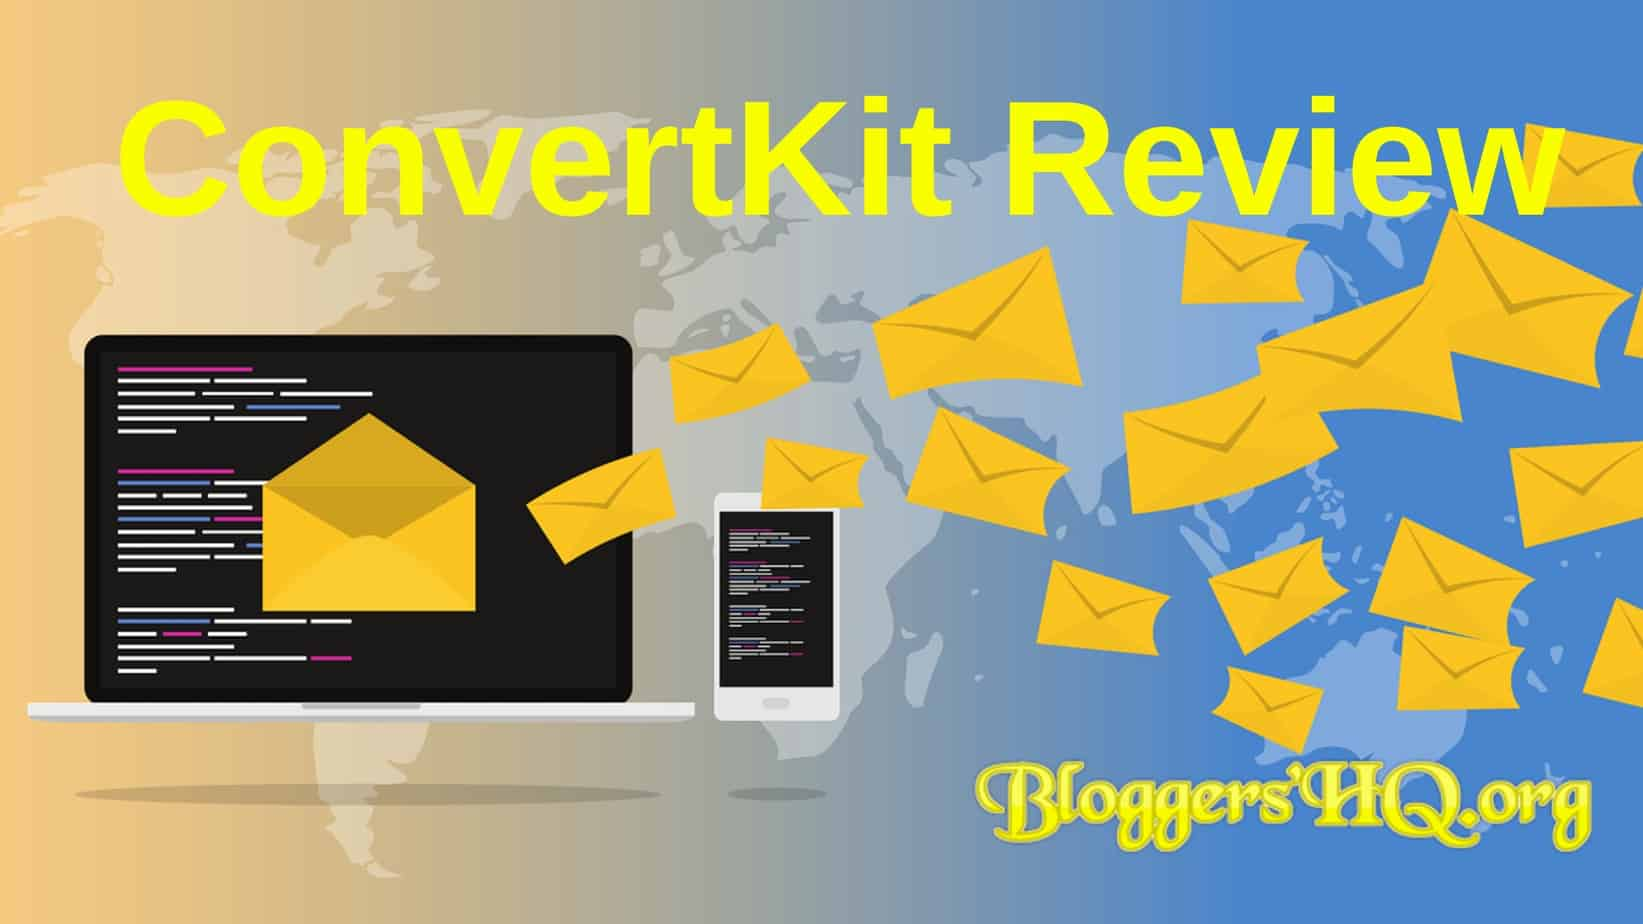 Us Online Coupon Printable Convertkit Email Marketing May 2020